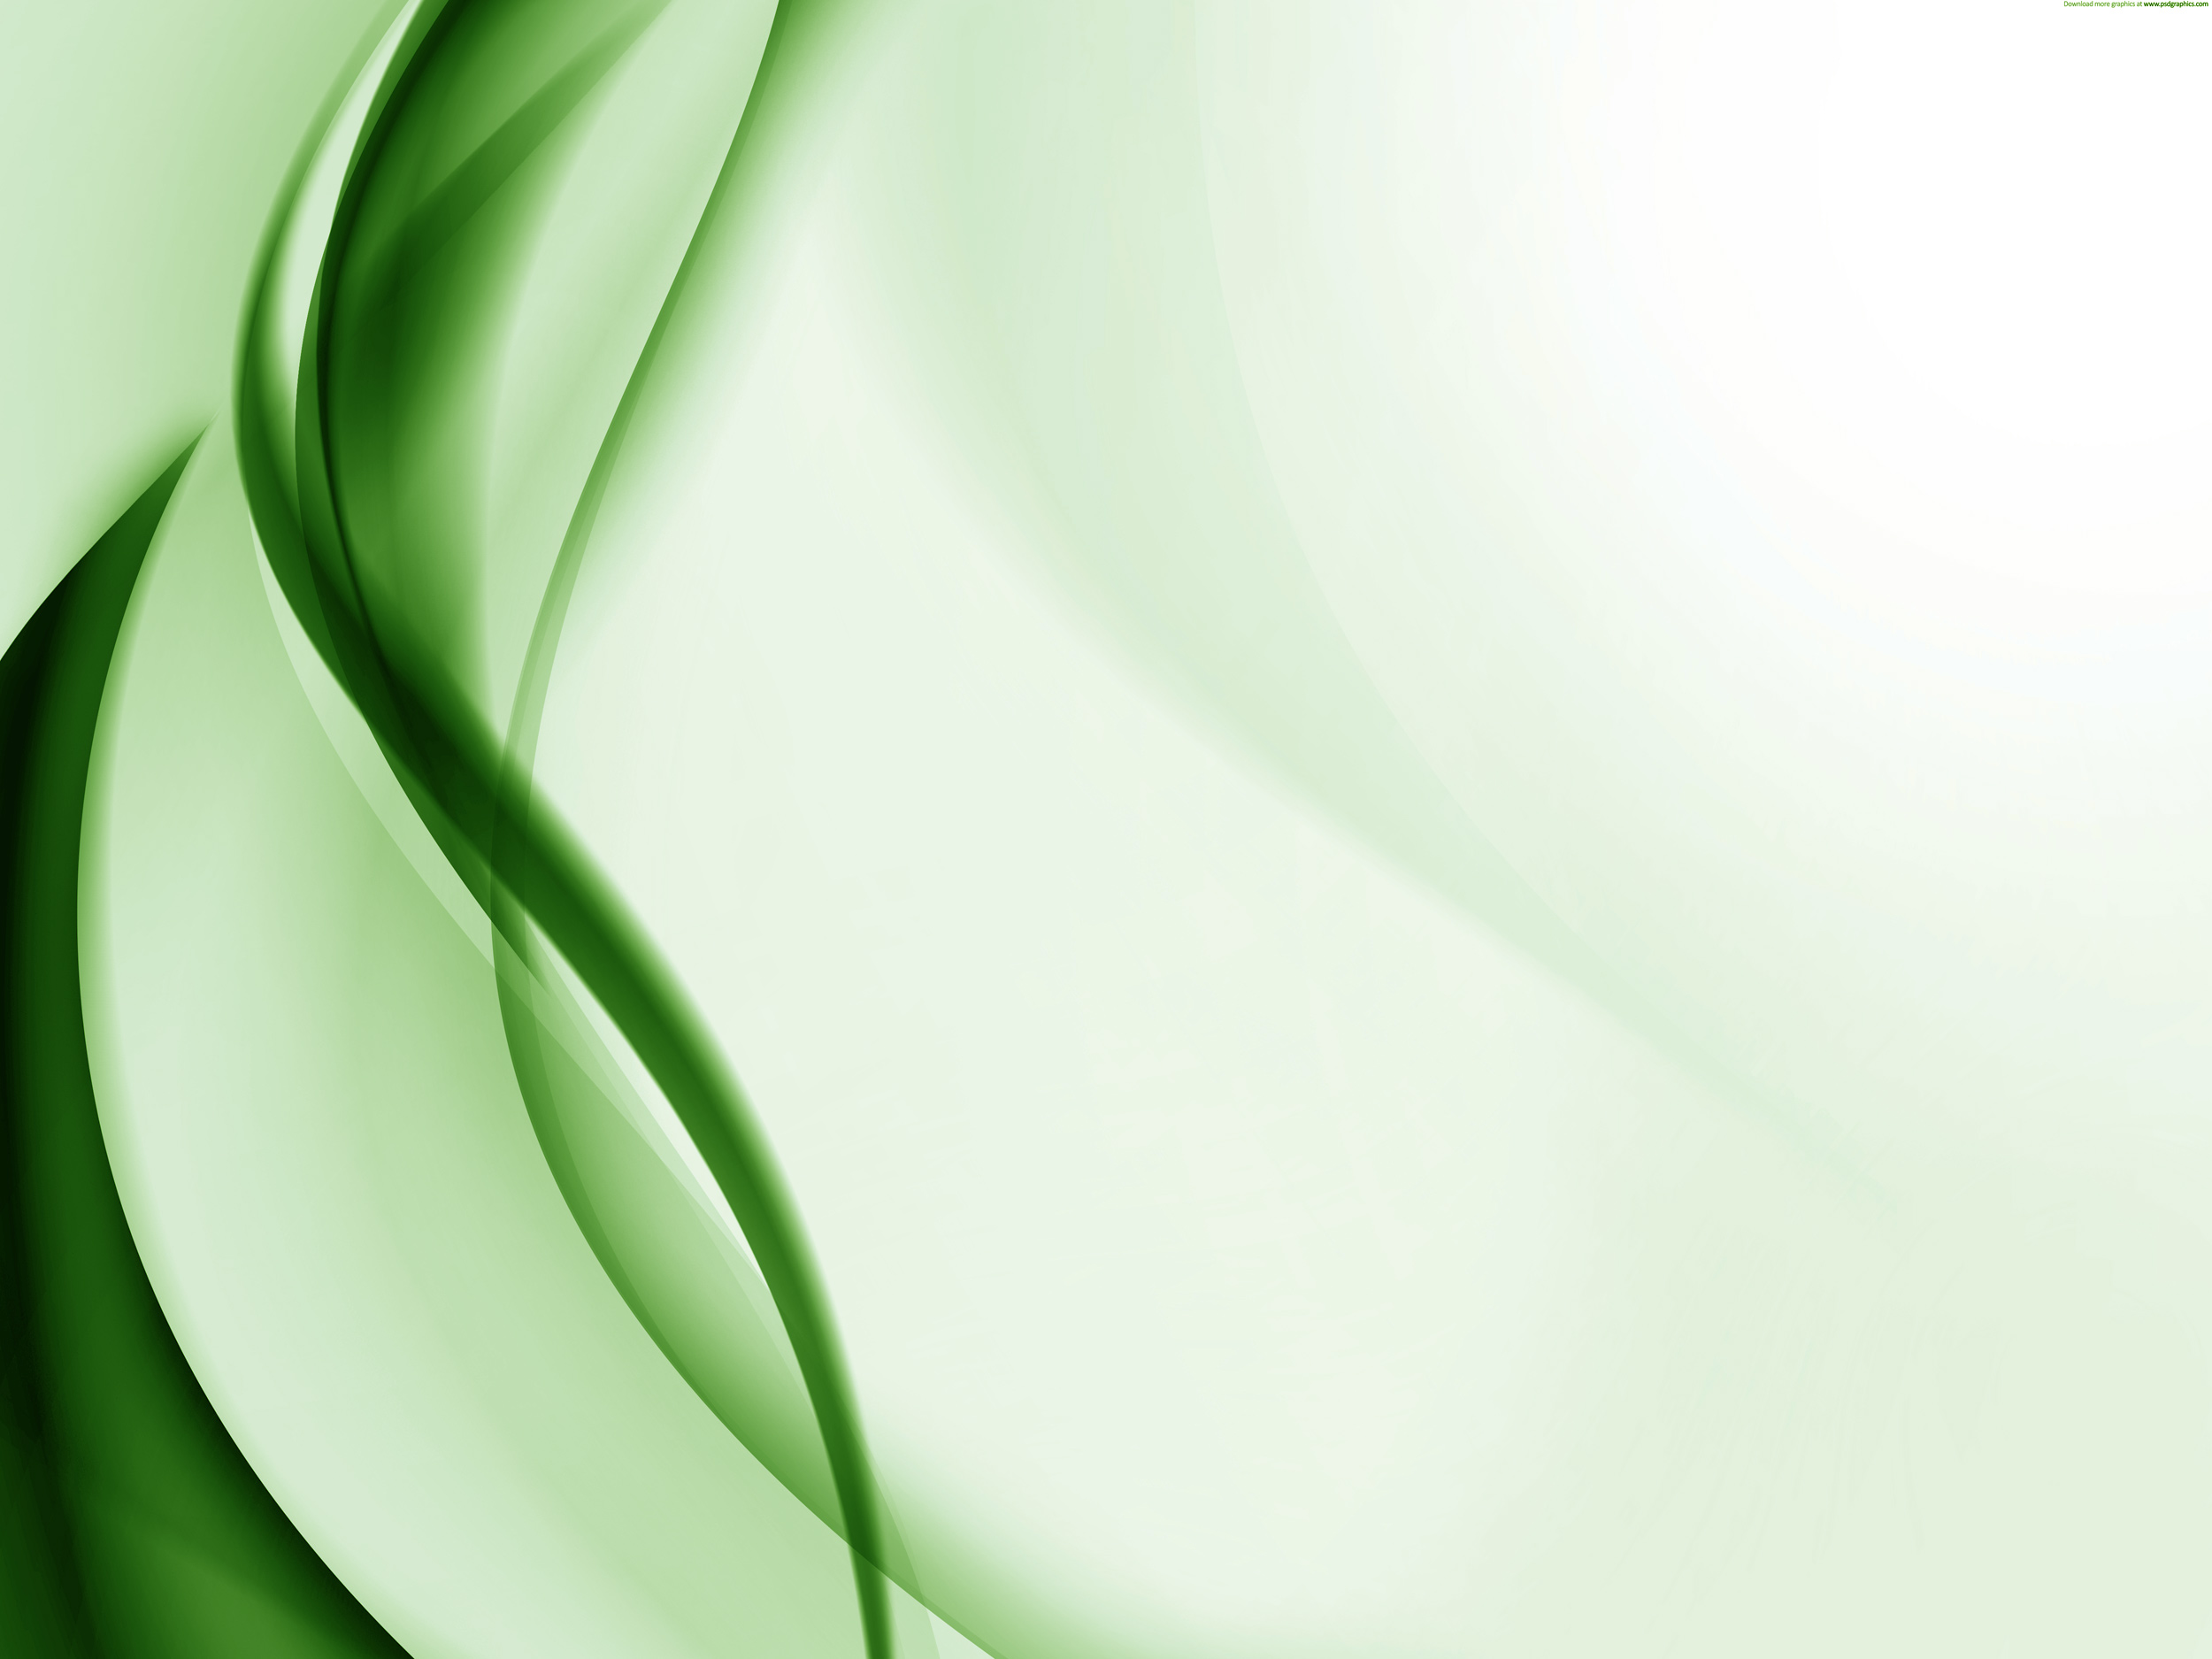 green and white swirl backgrounds wwwimgkidcom the